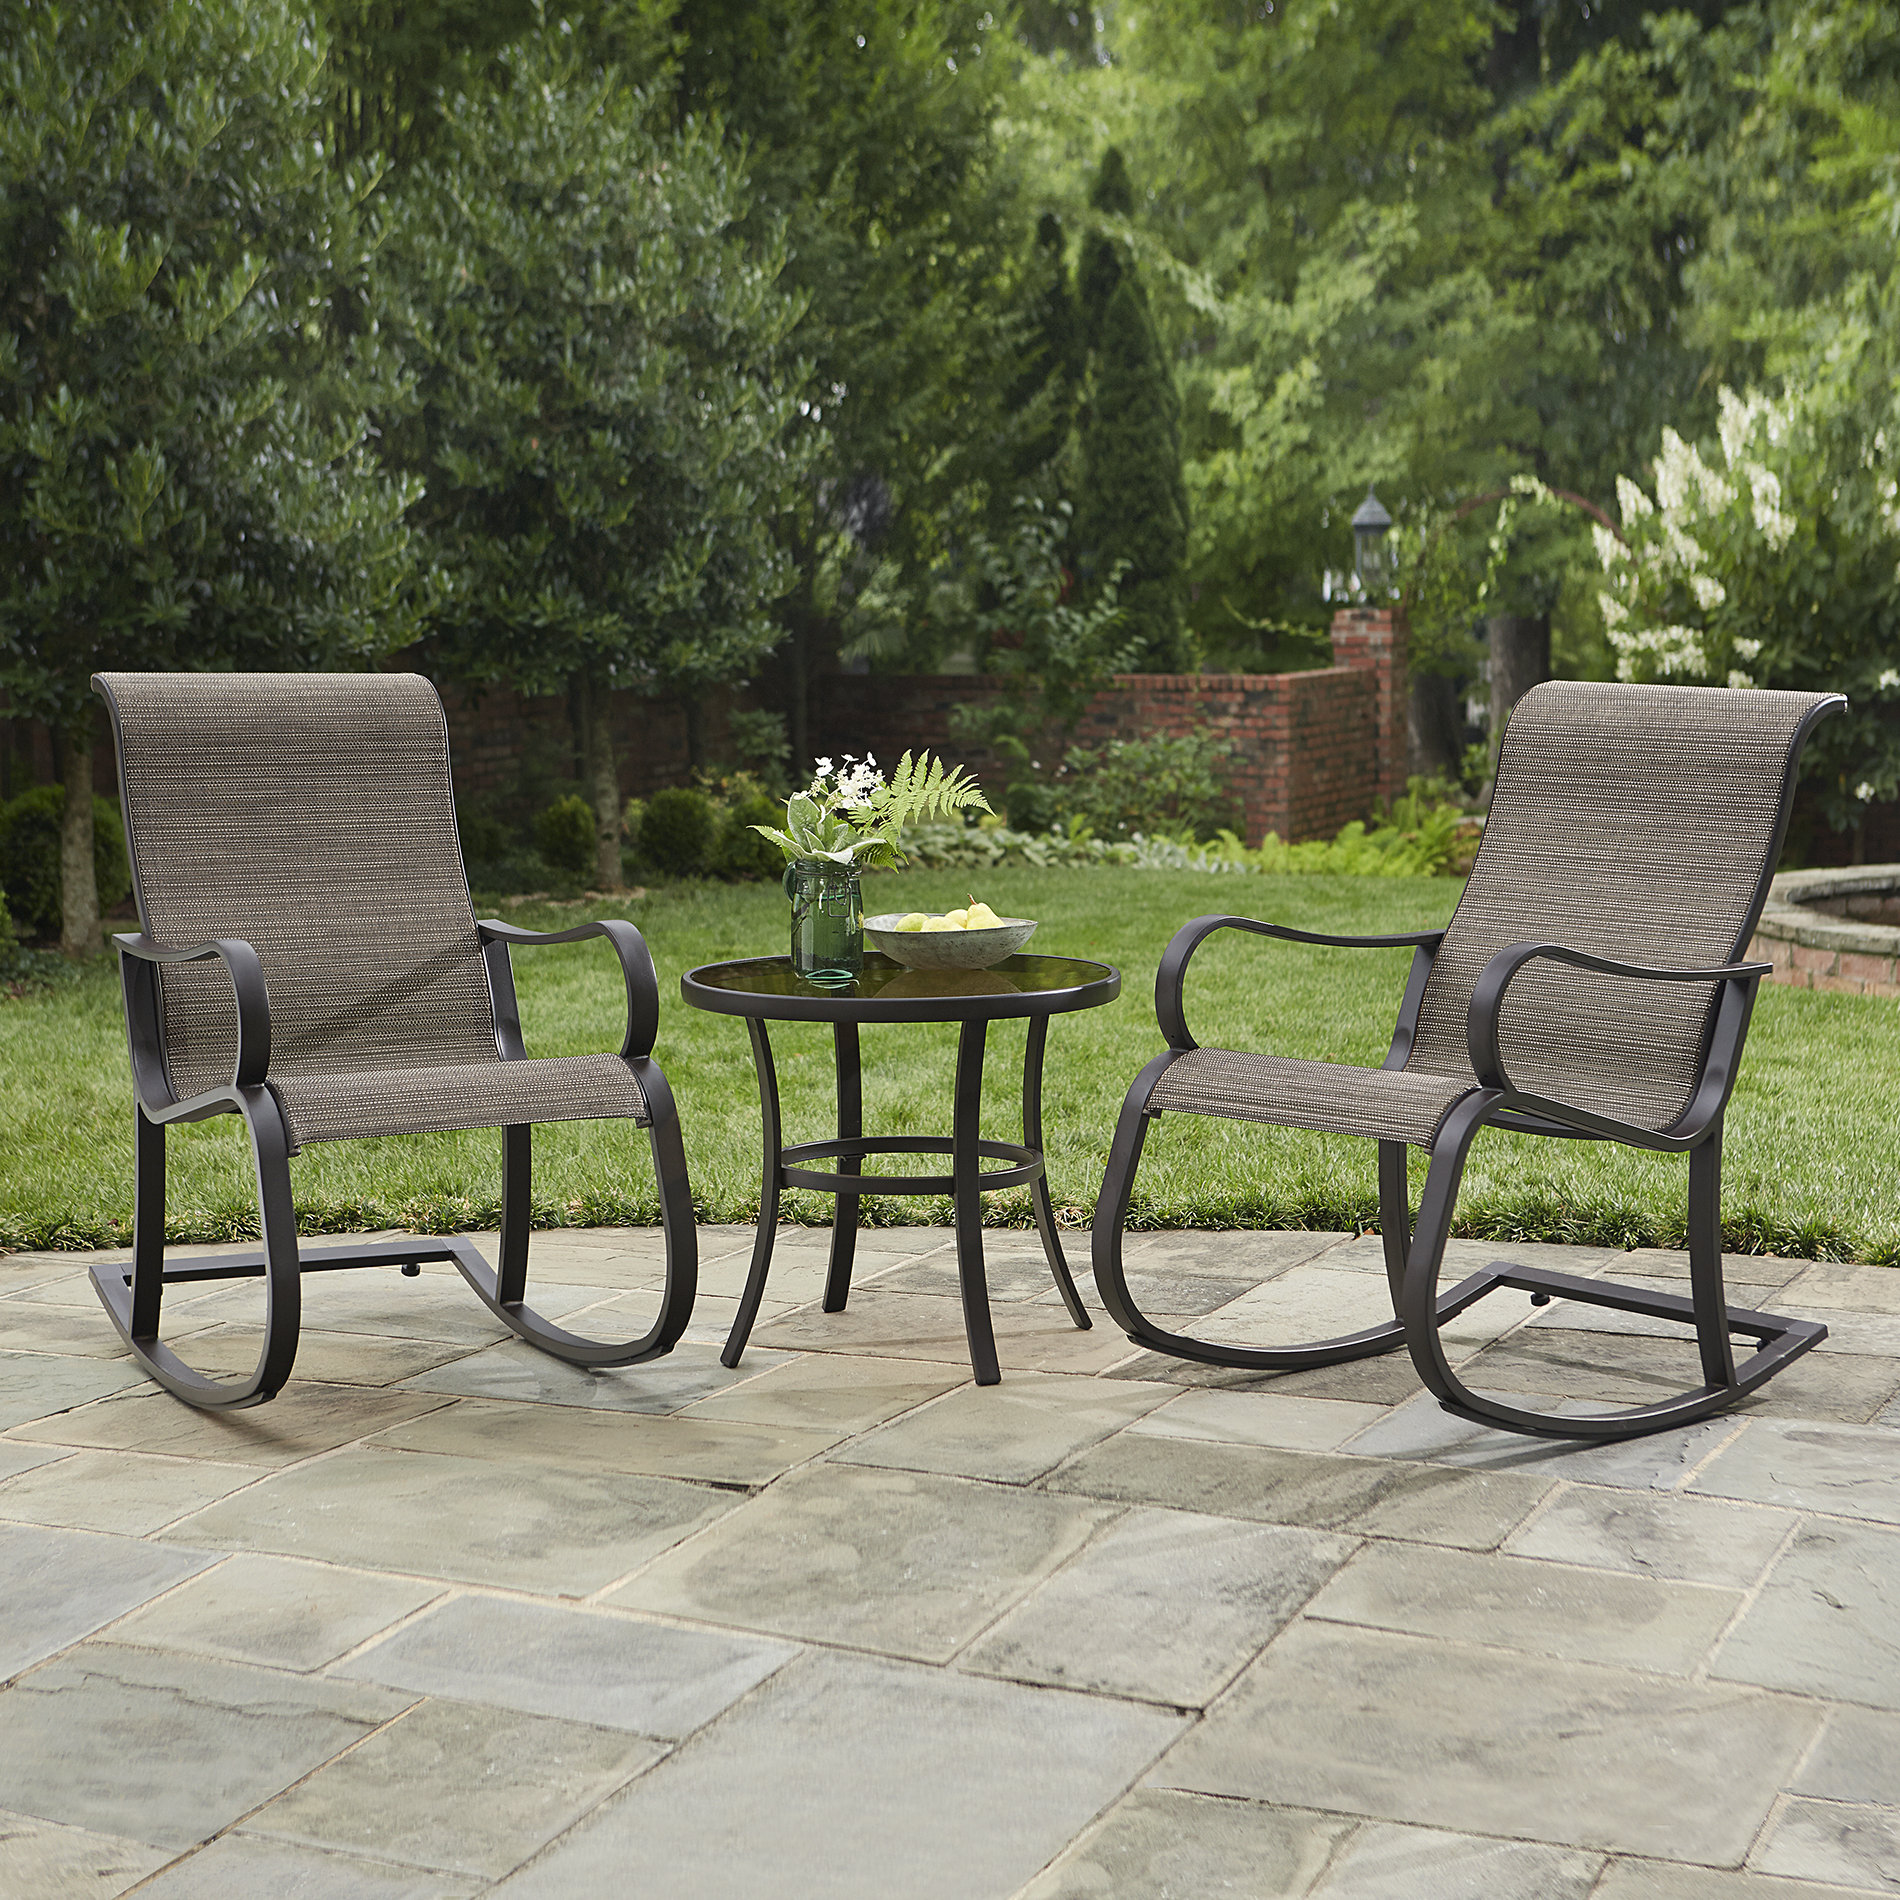 Jaclyn Smith Marion 3 Pc Rocker Bistro Set - Outdoor